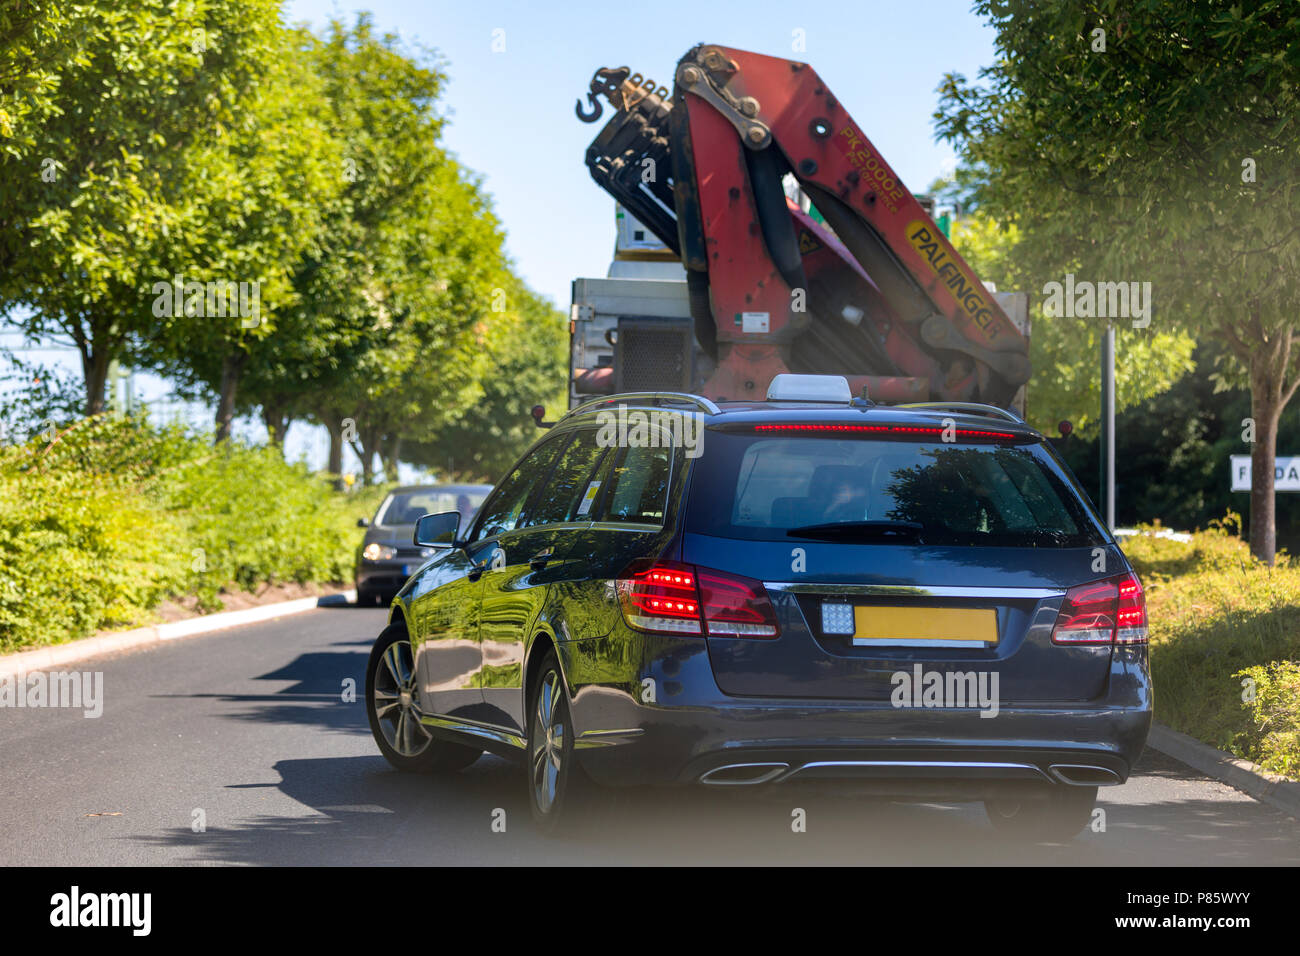 Car attempting to blindly overtake a large lorry that is blocking or stopping traffic Stock Photo